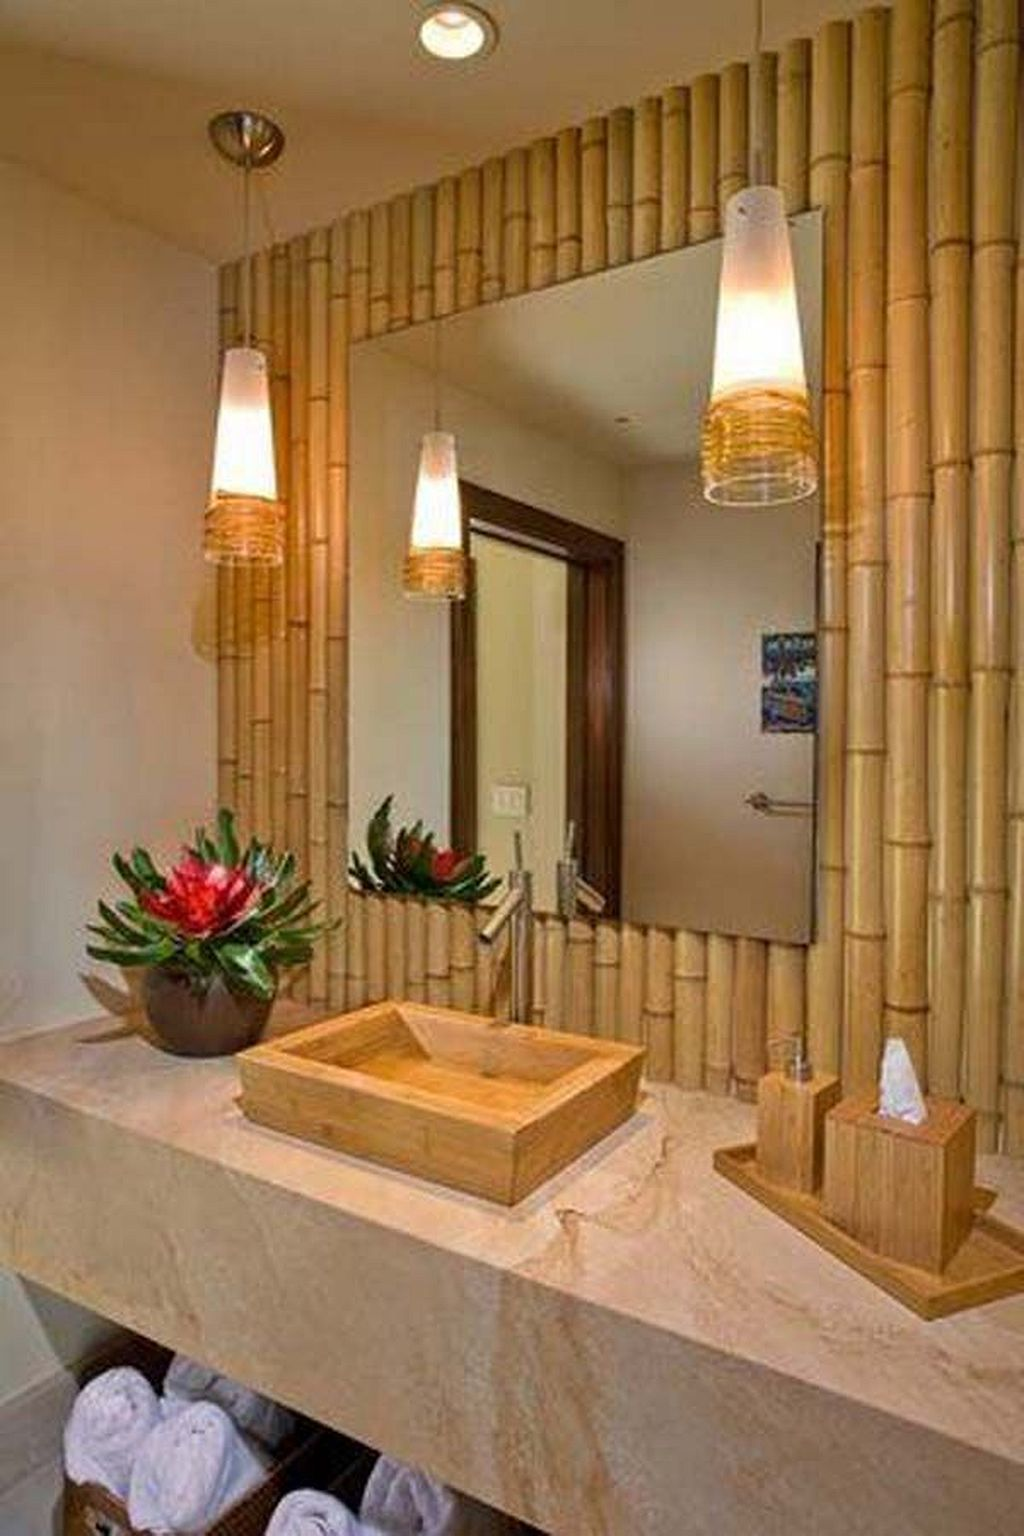 Easy And Attractive Diy Projects Using Bamboo 15 Bamboo Decor